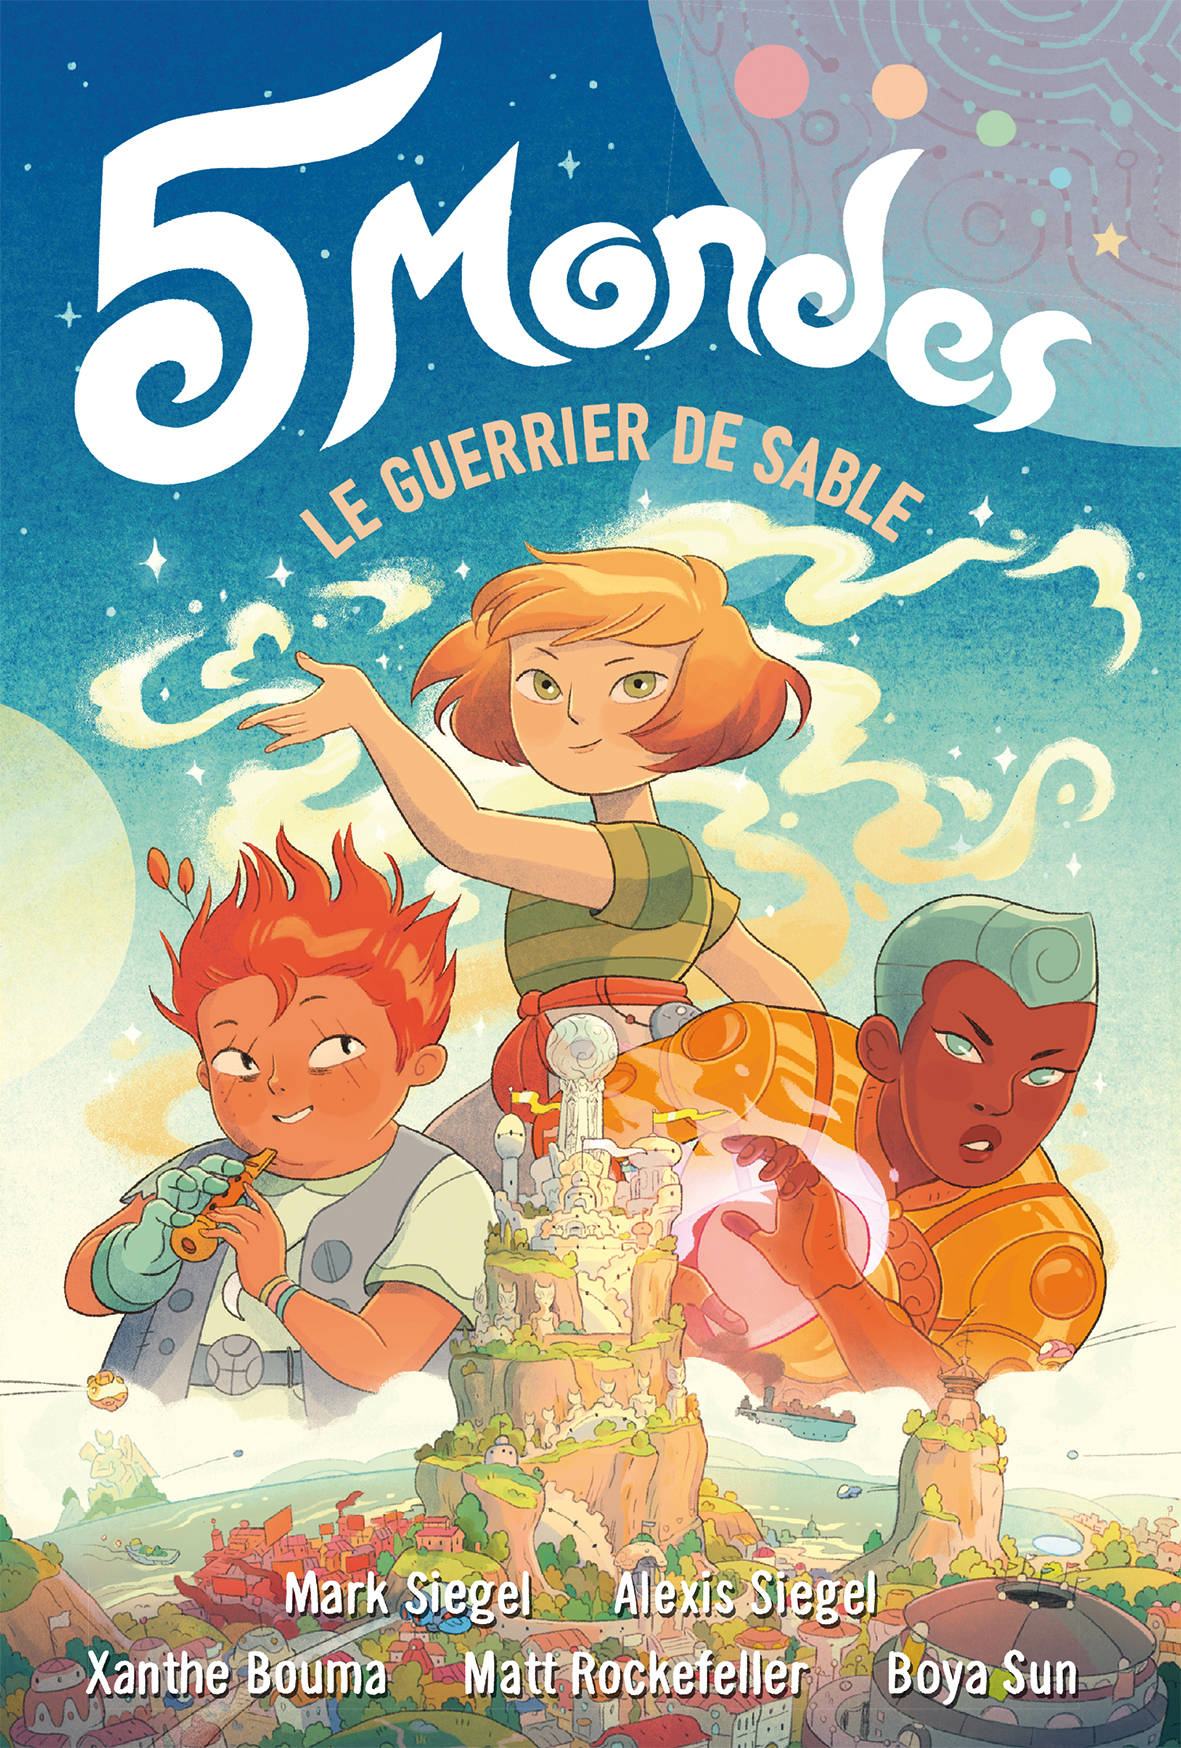 5 Mondes (Tome 1) - Le guerrier de sable | Siegel, Mark